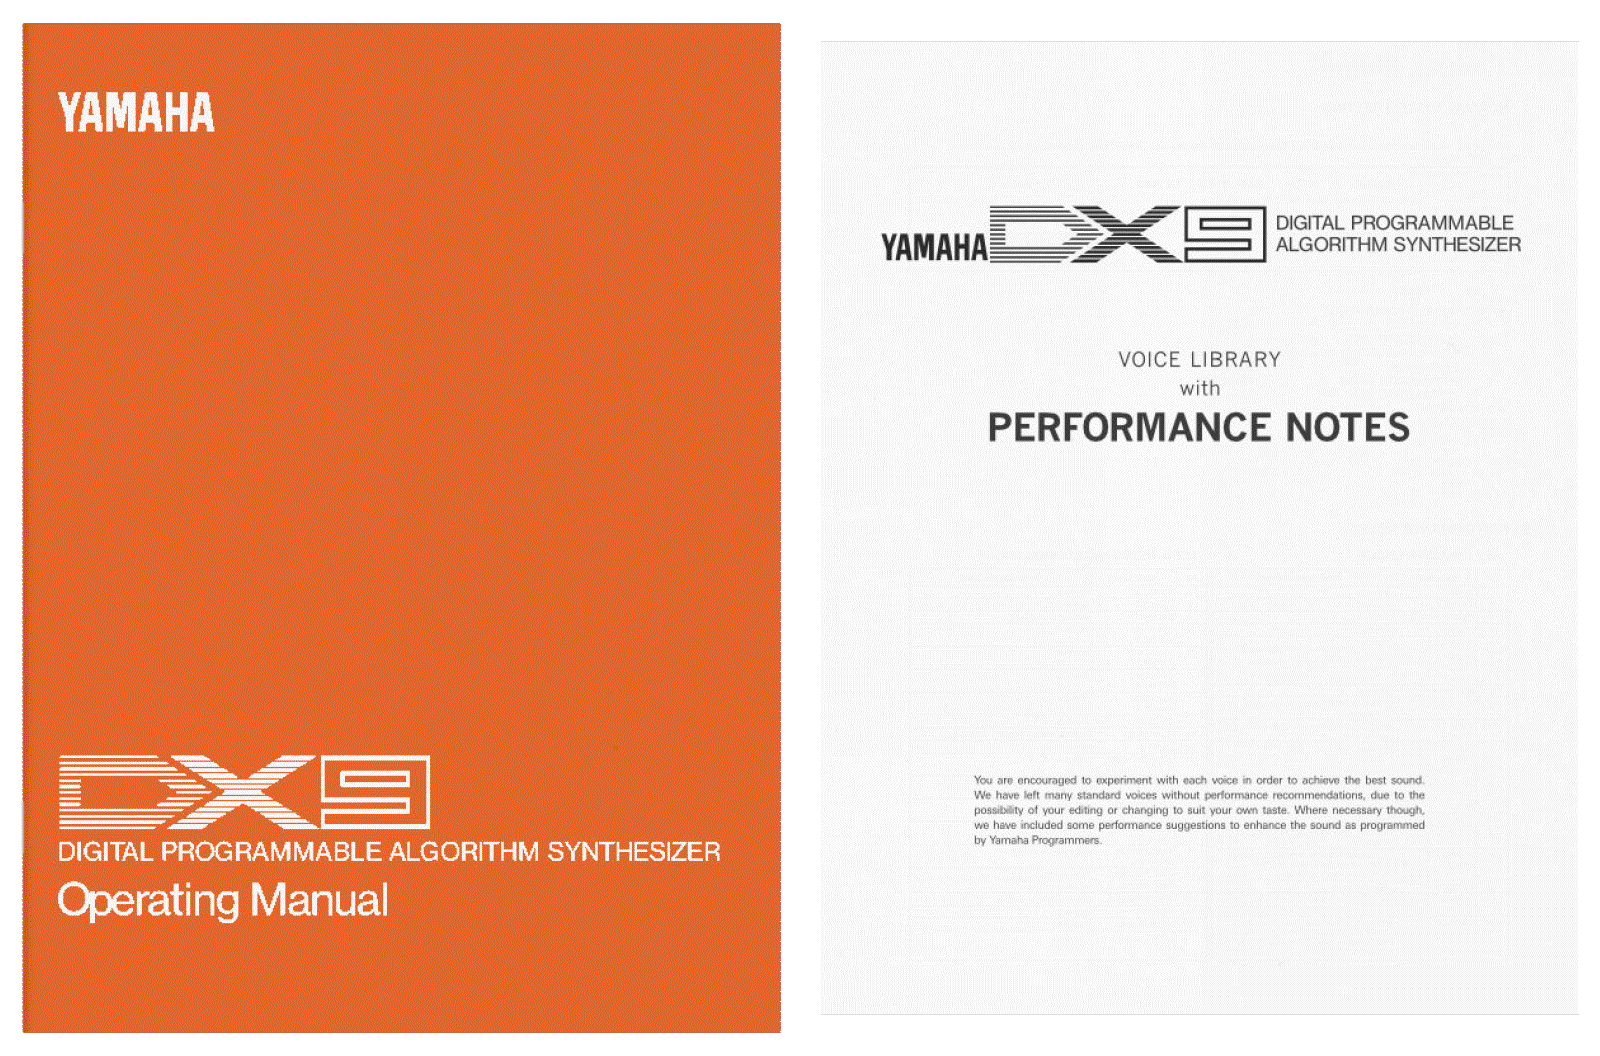 Yamaha DX9 operating manual performance notes buy print pdf